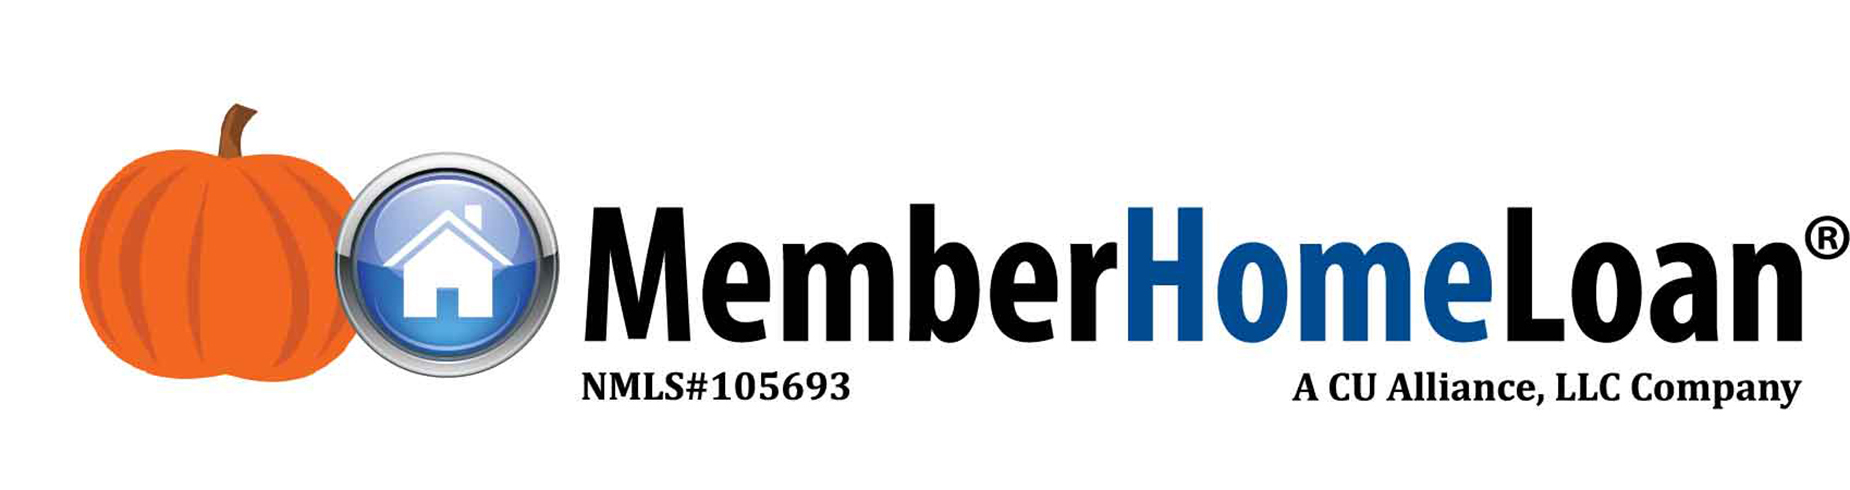 Member Home Loan logo, click here to go to the home page